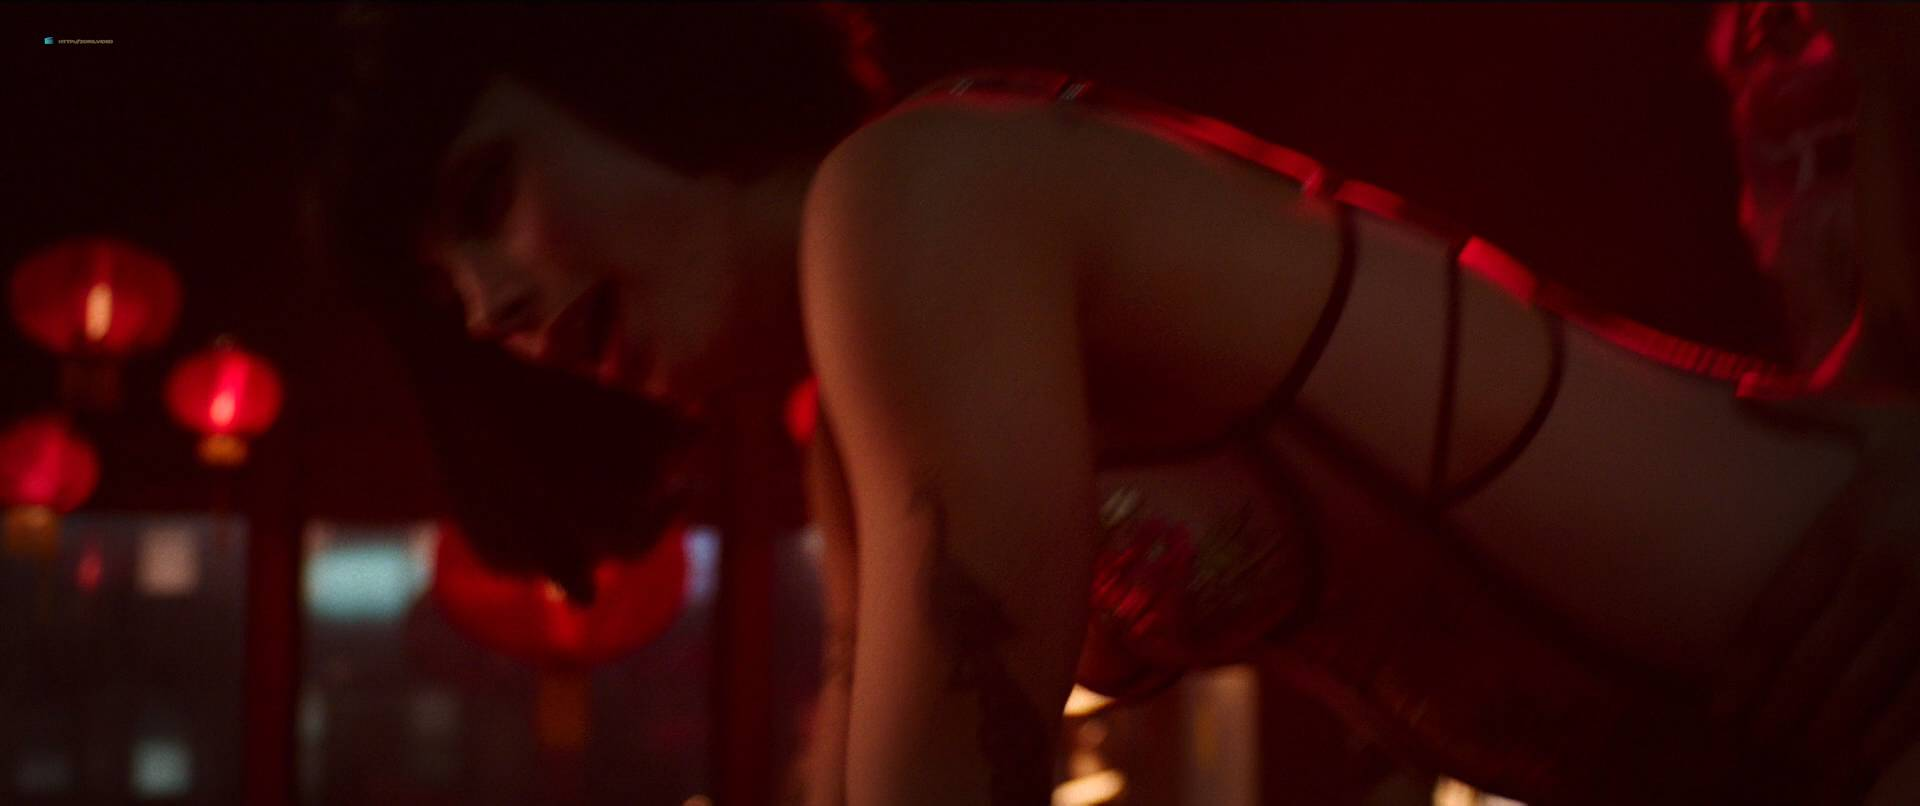 Morena Baccarin hot sex and uber sexy - Deadpool (2016) HD 1080p (11)